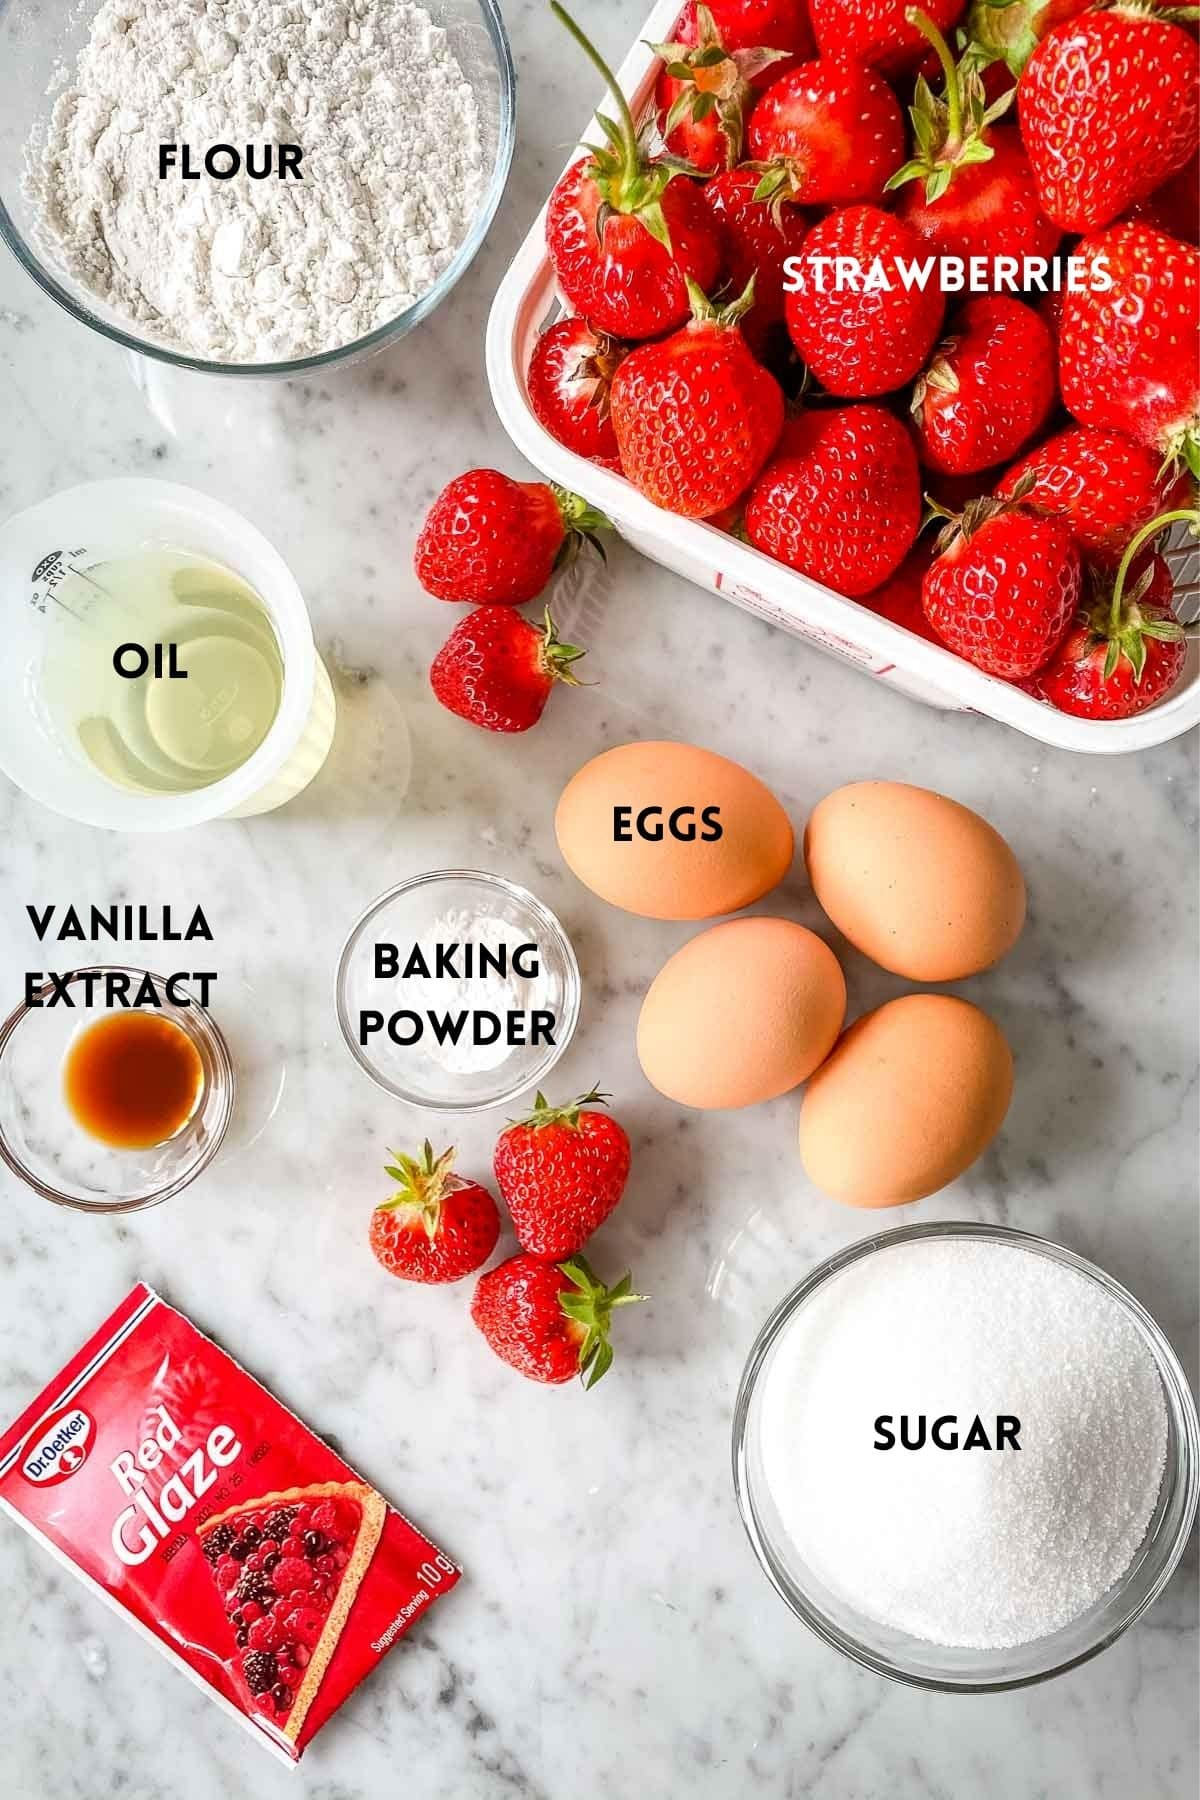 Ingredients for making a strawberry cake